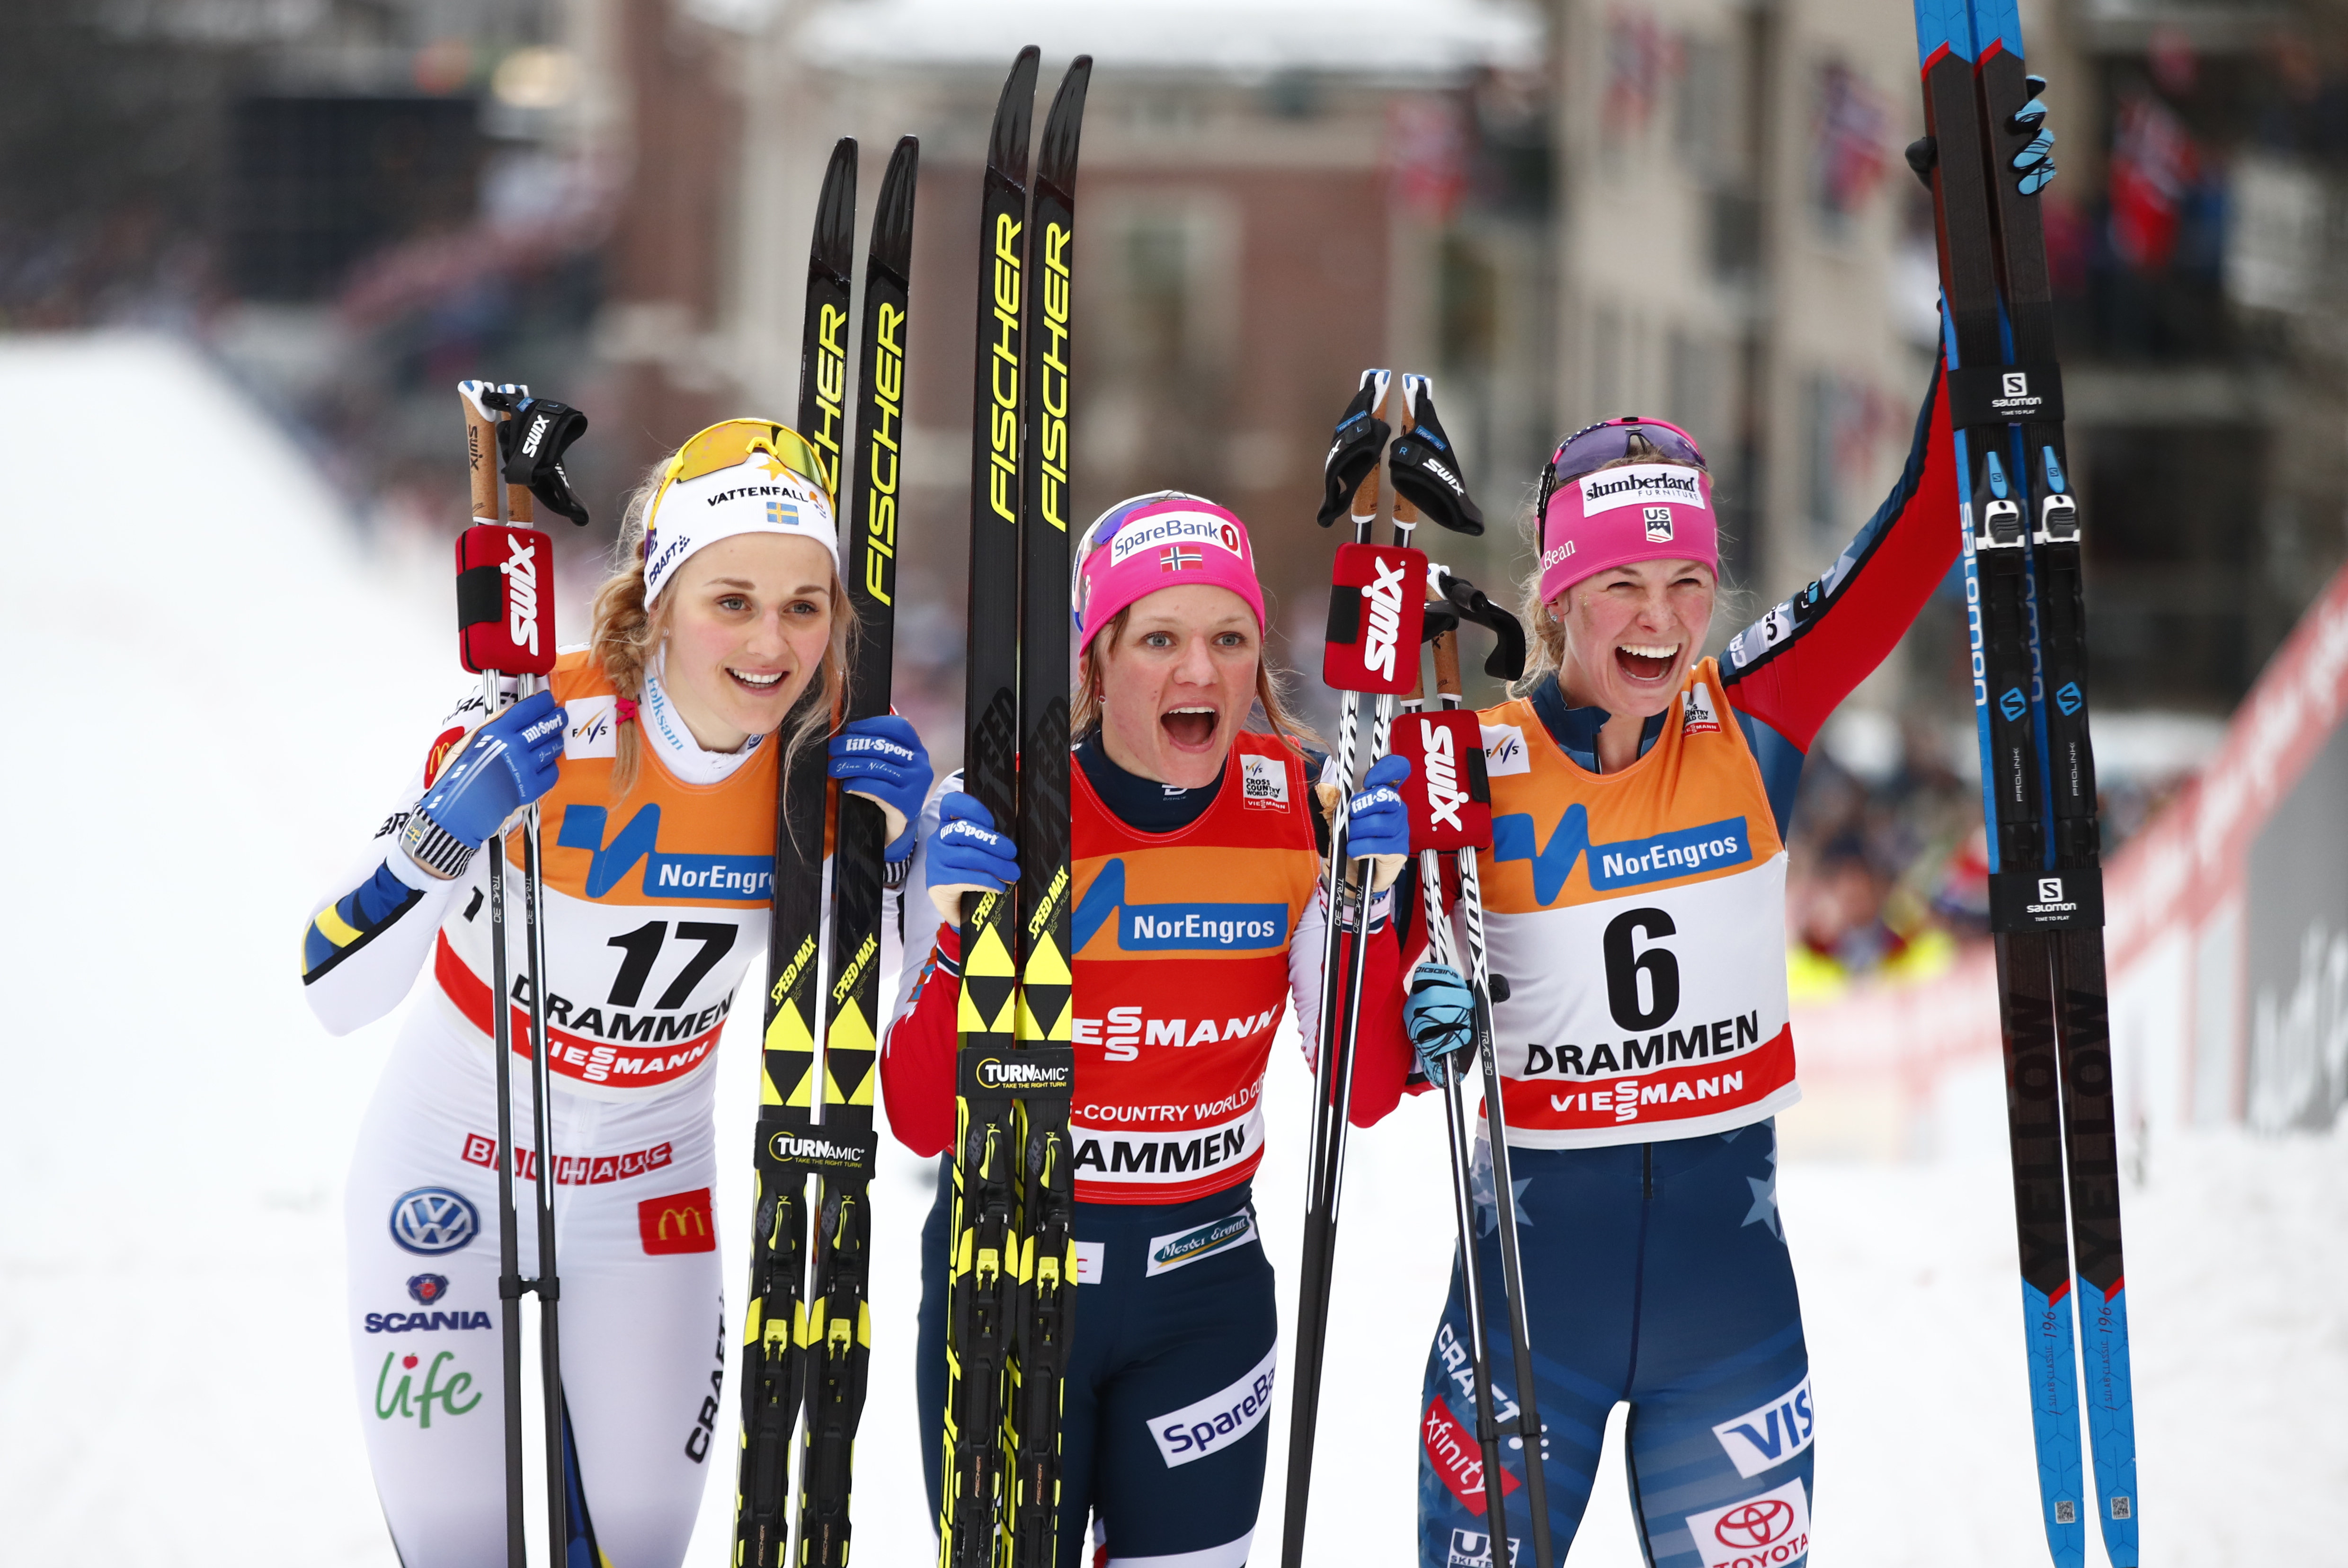 Jessie Diggins celebrates her first World Cup cross country classic sprint podium Wednesday in Drammen, Norway. Stina Nilsson of Sweden (left) was second, and Maiken Caspersen Falla of Norway took the victory. (Getty Images/AFP -  Terje Pedersen)